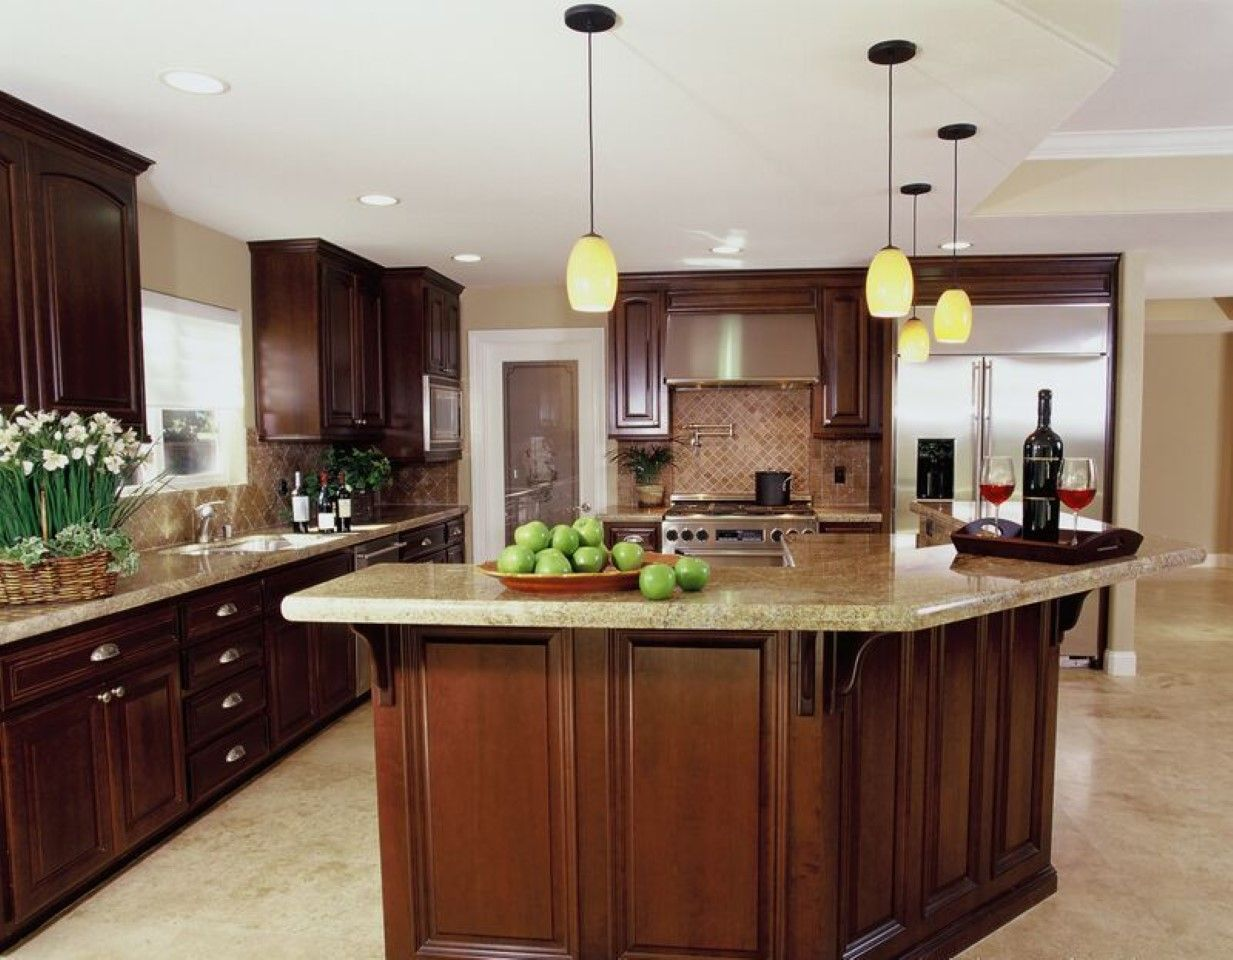 New Trend Yellow Pendant Lamps In Kitchen Design Feat L Shaped Pleasing Dark Wood Cabinets Kitchen Design Design Decoration